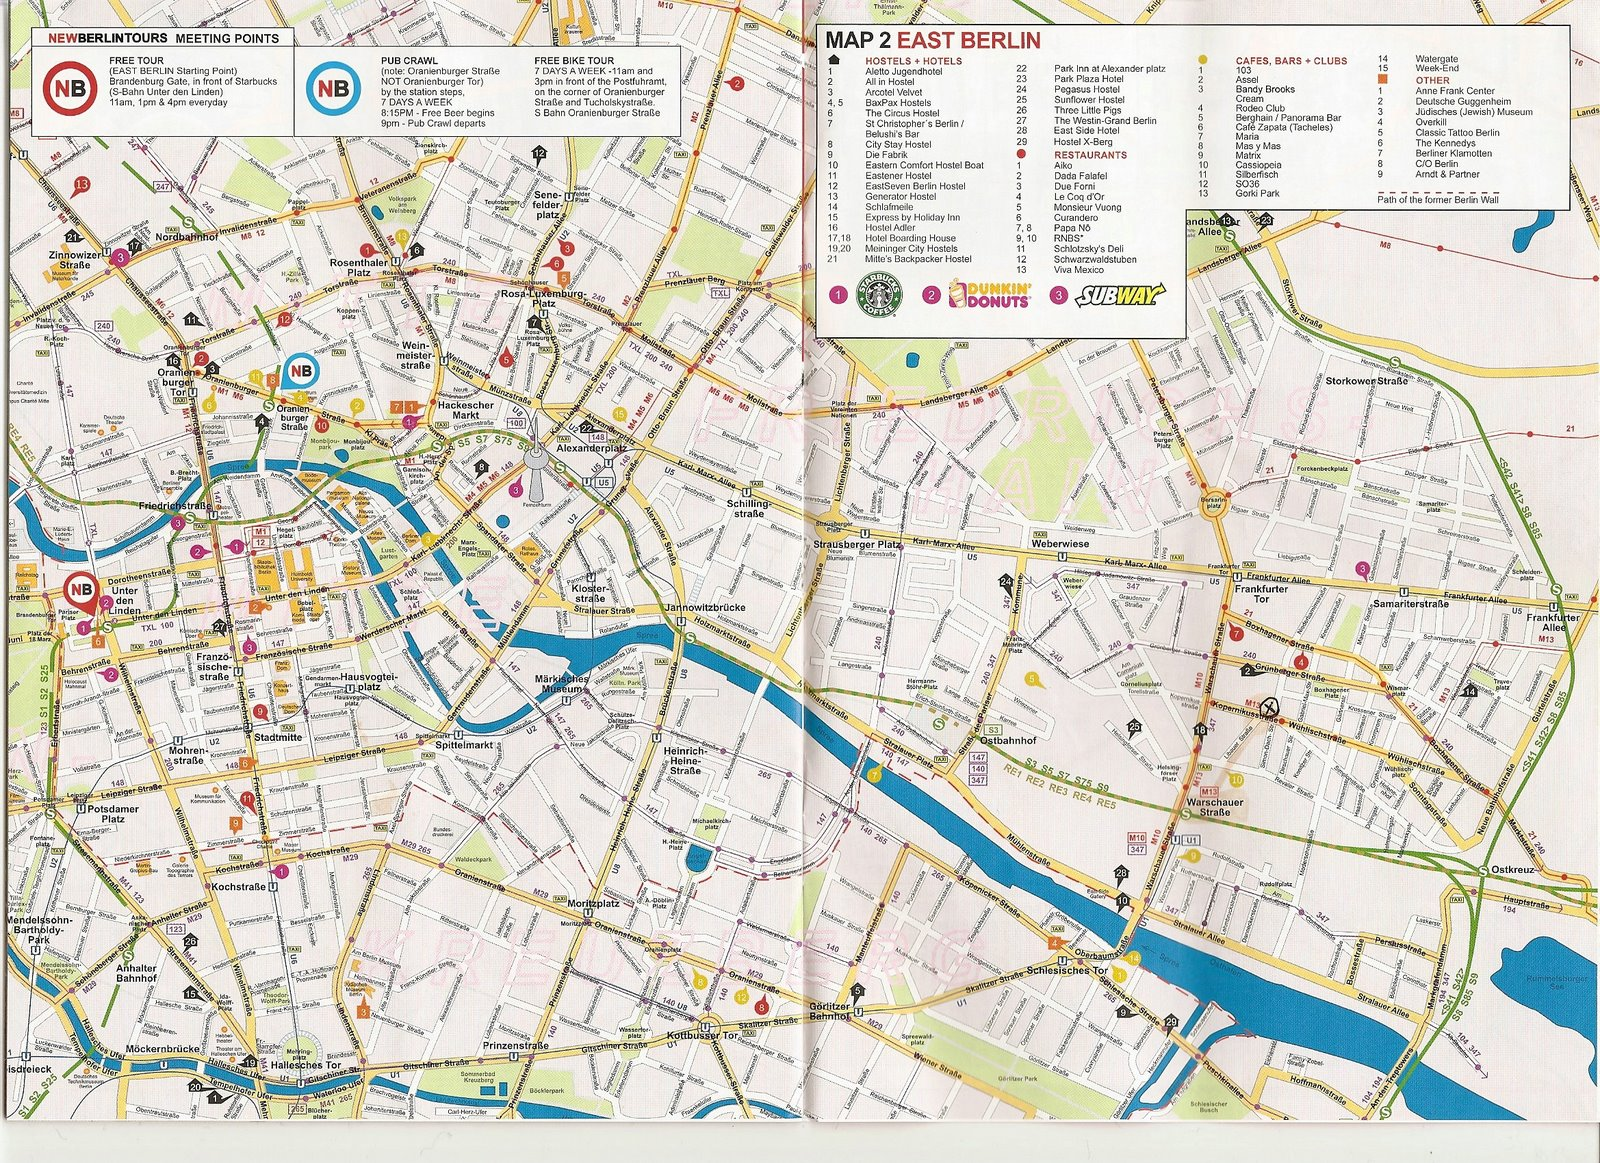 berlin city map ile ilgili görsel sonucu berlin city map